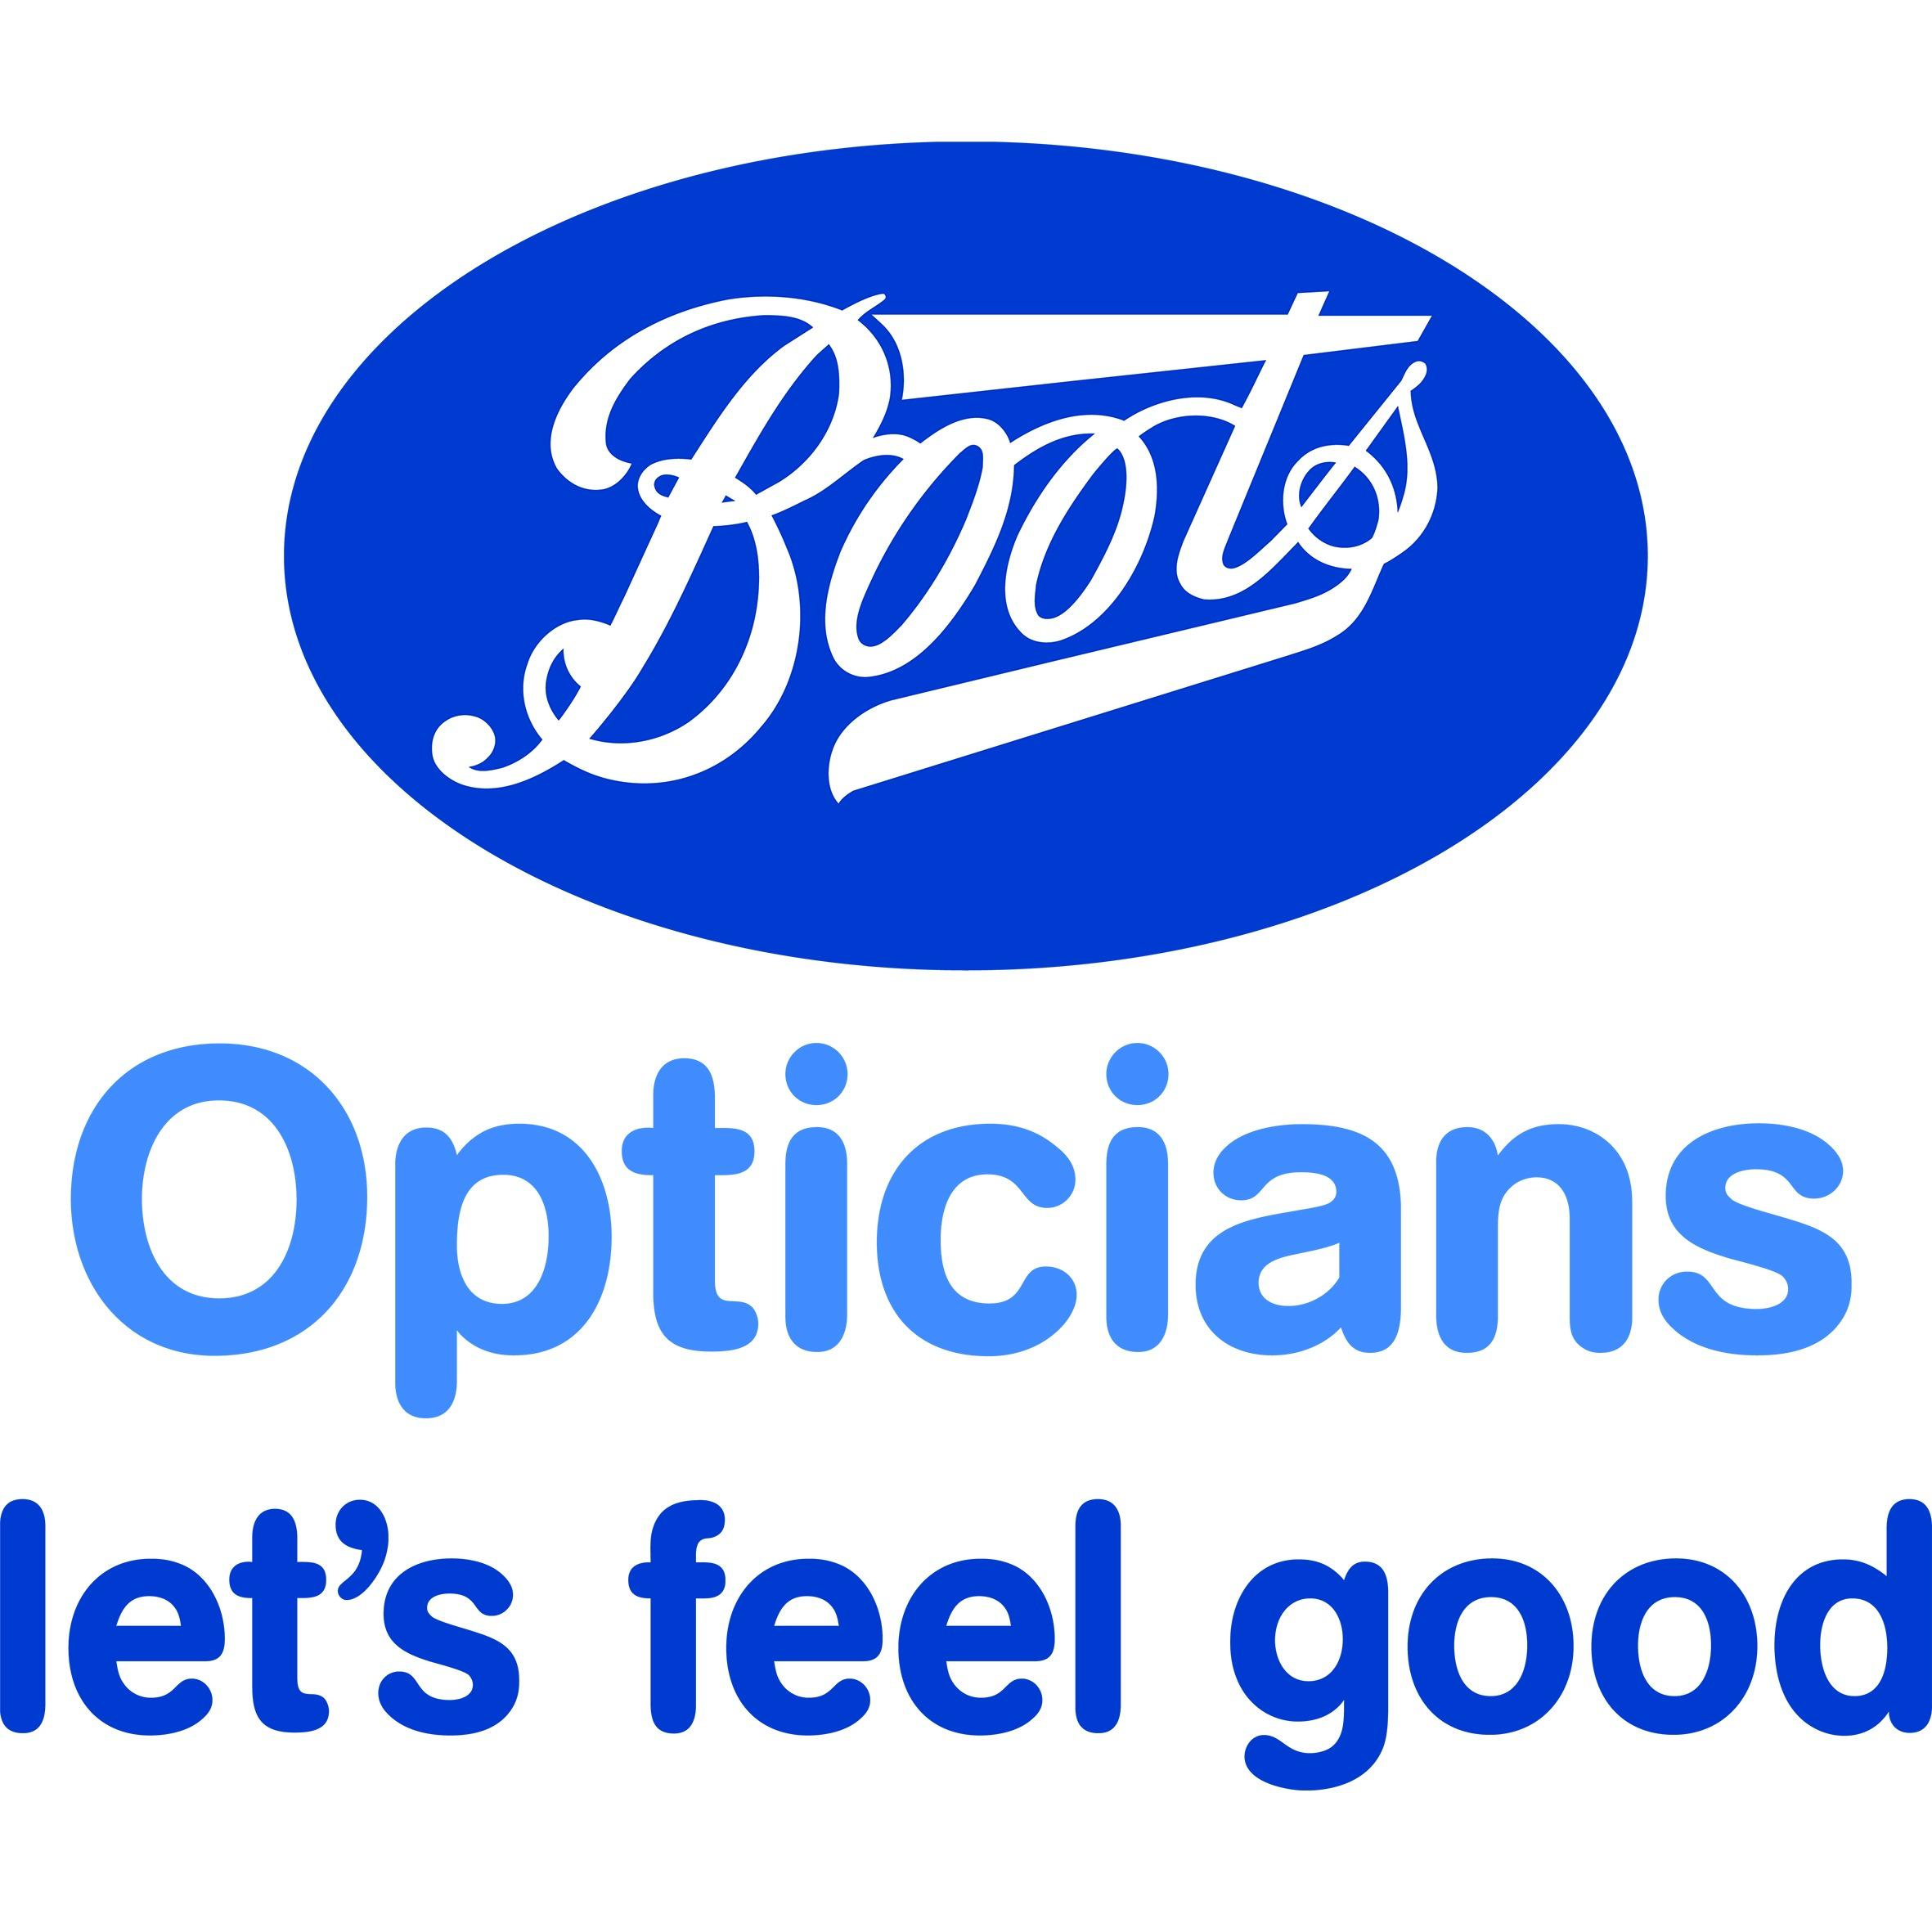 Boots Opticians - Brighton, East Sussex  BN1 2BE - 03451 253776 | ShowMeLocal.com